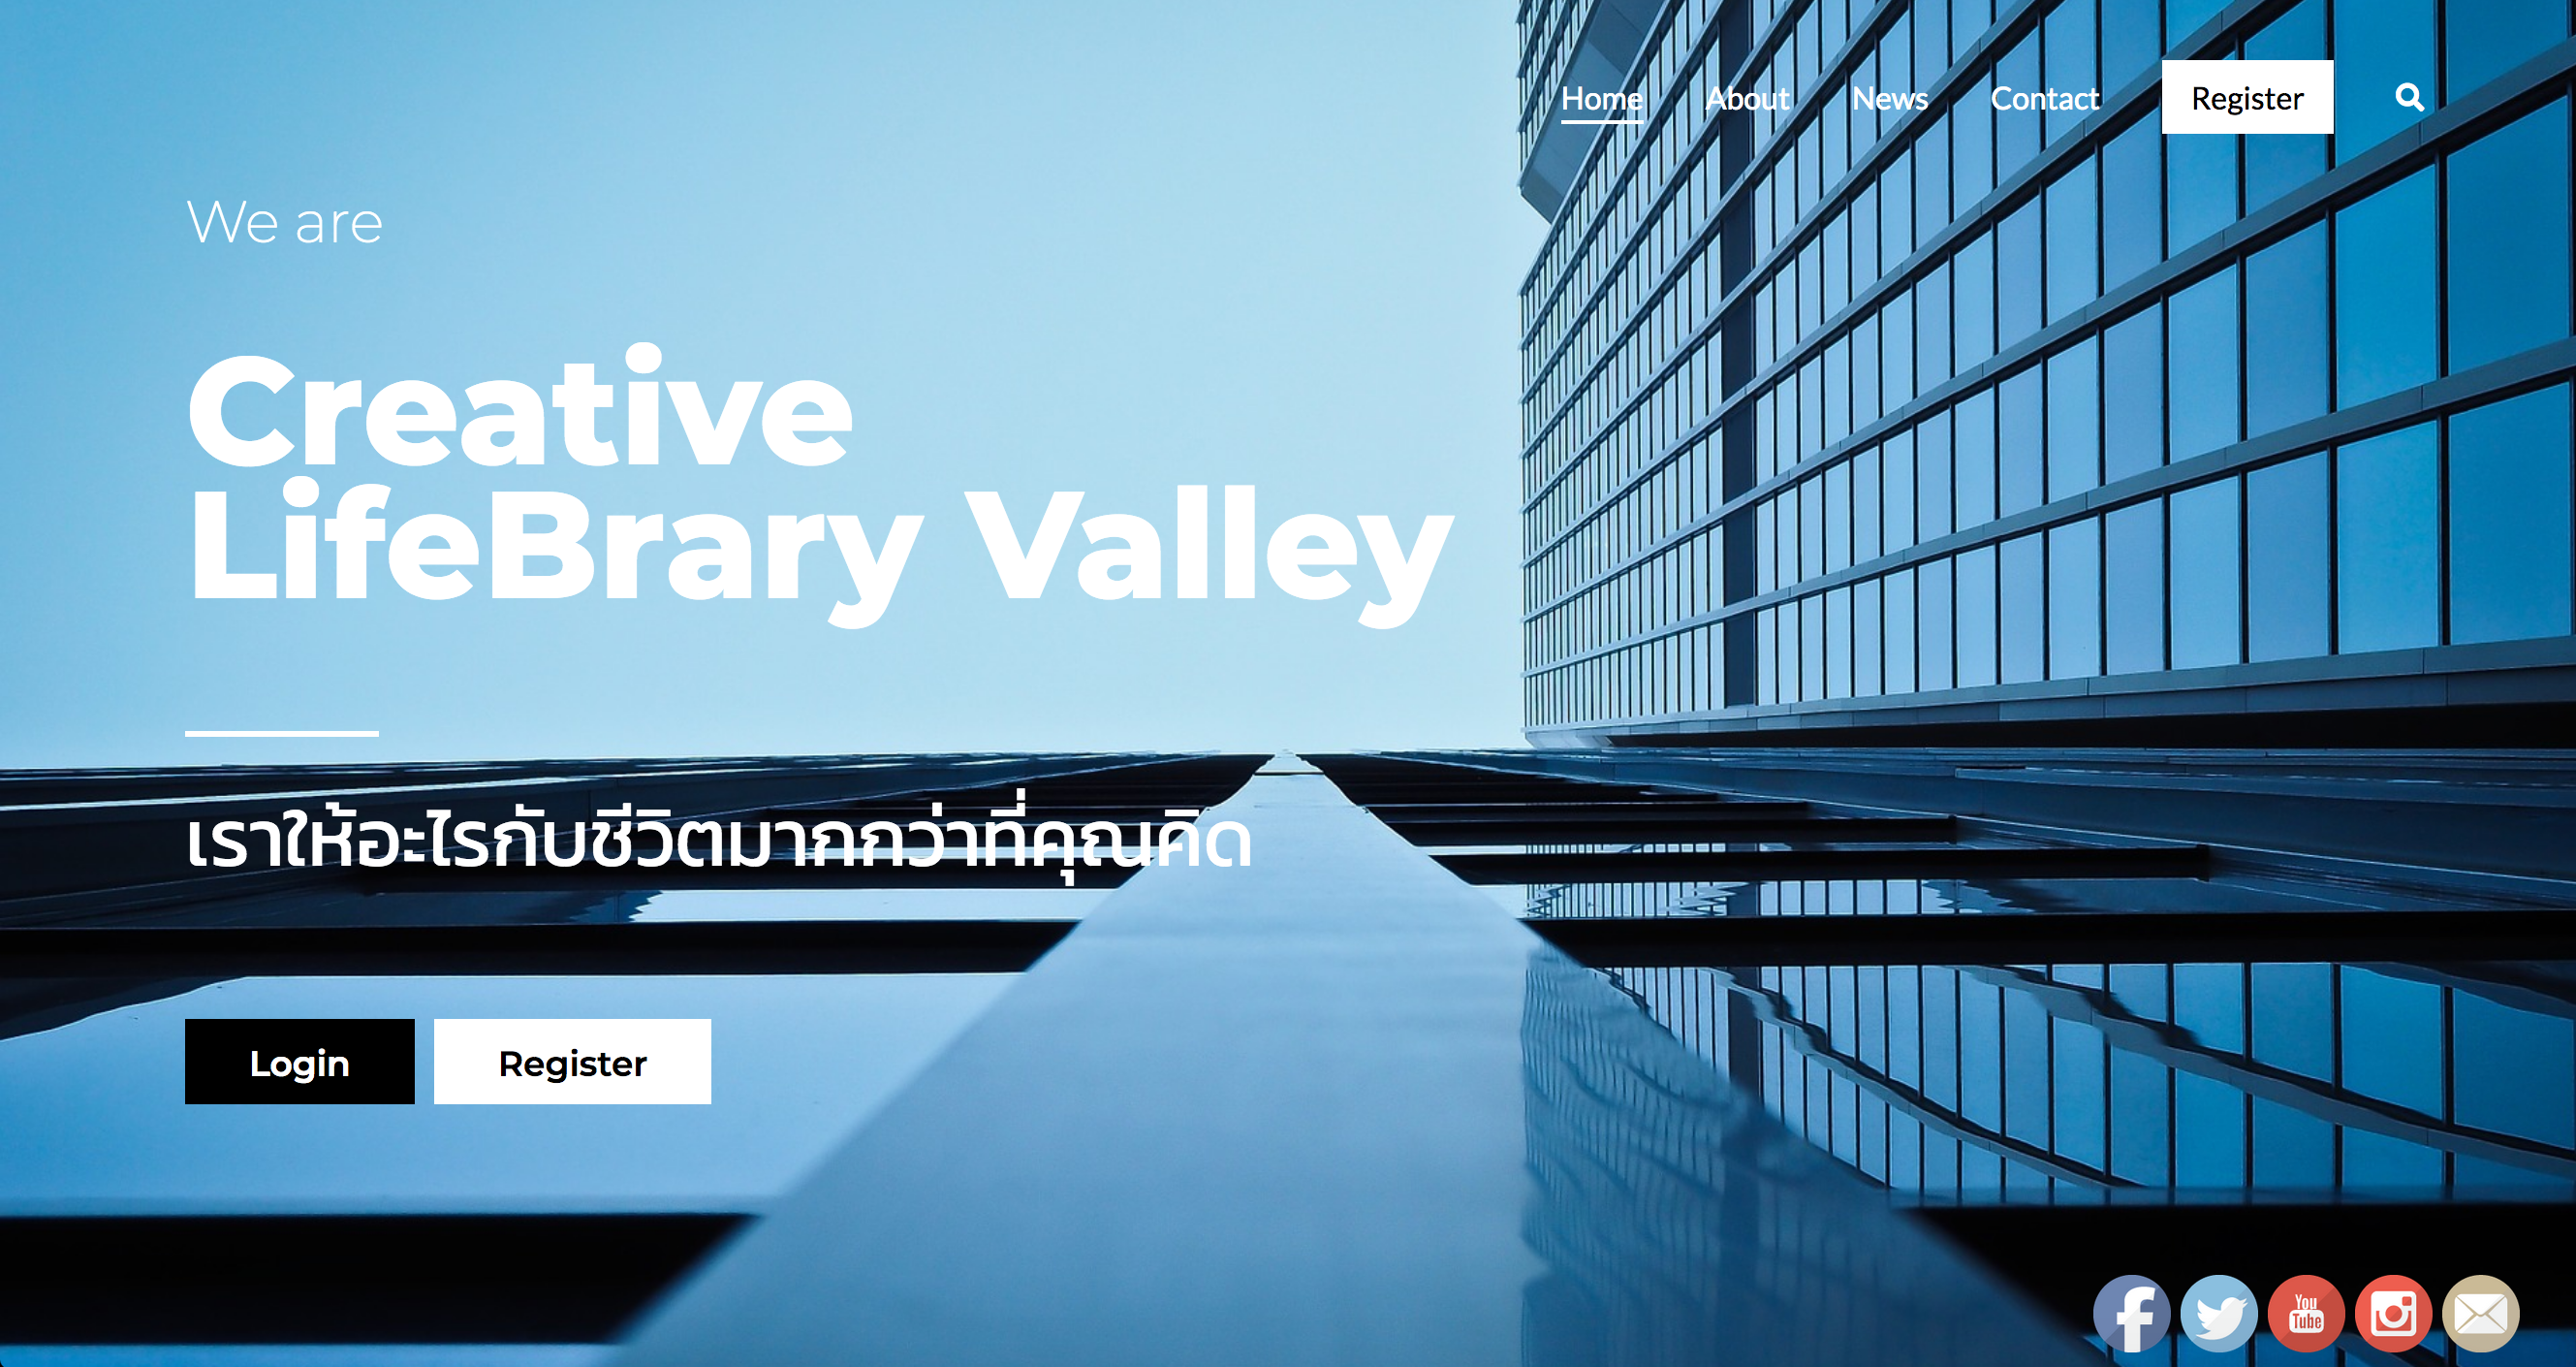 Creative LifeBrary Valley